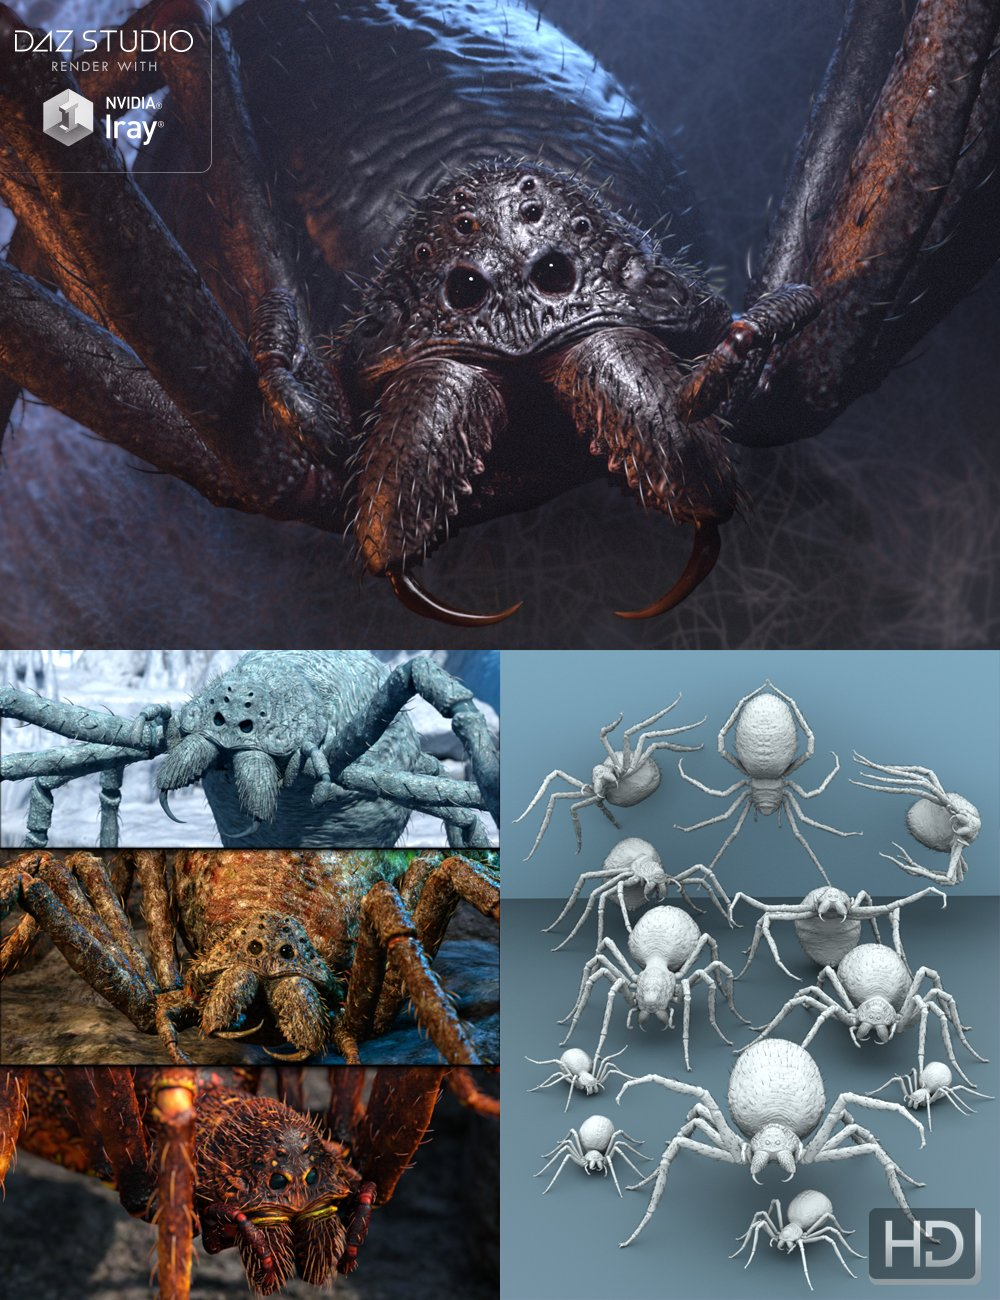 Giant Monster Spider HD Bundle by: Groovy Patrol, 3D Models by Daz 3D